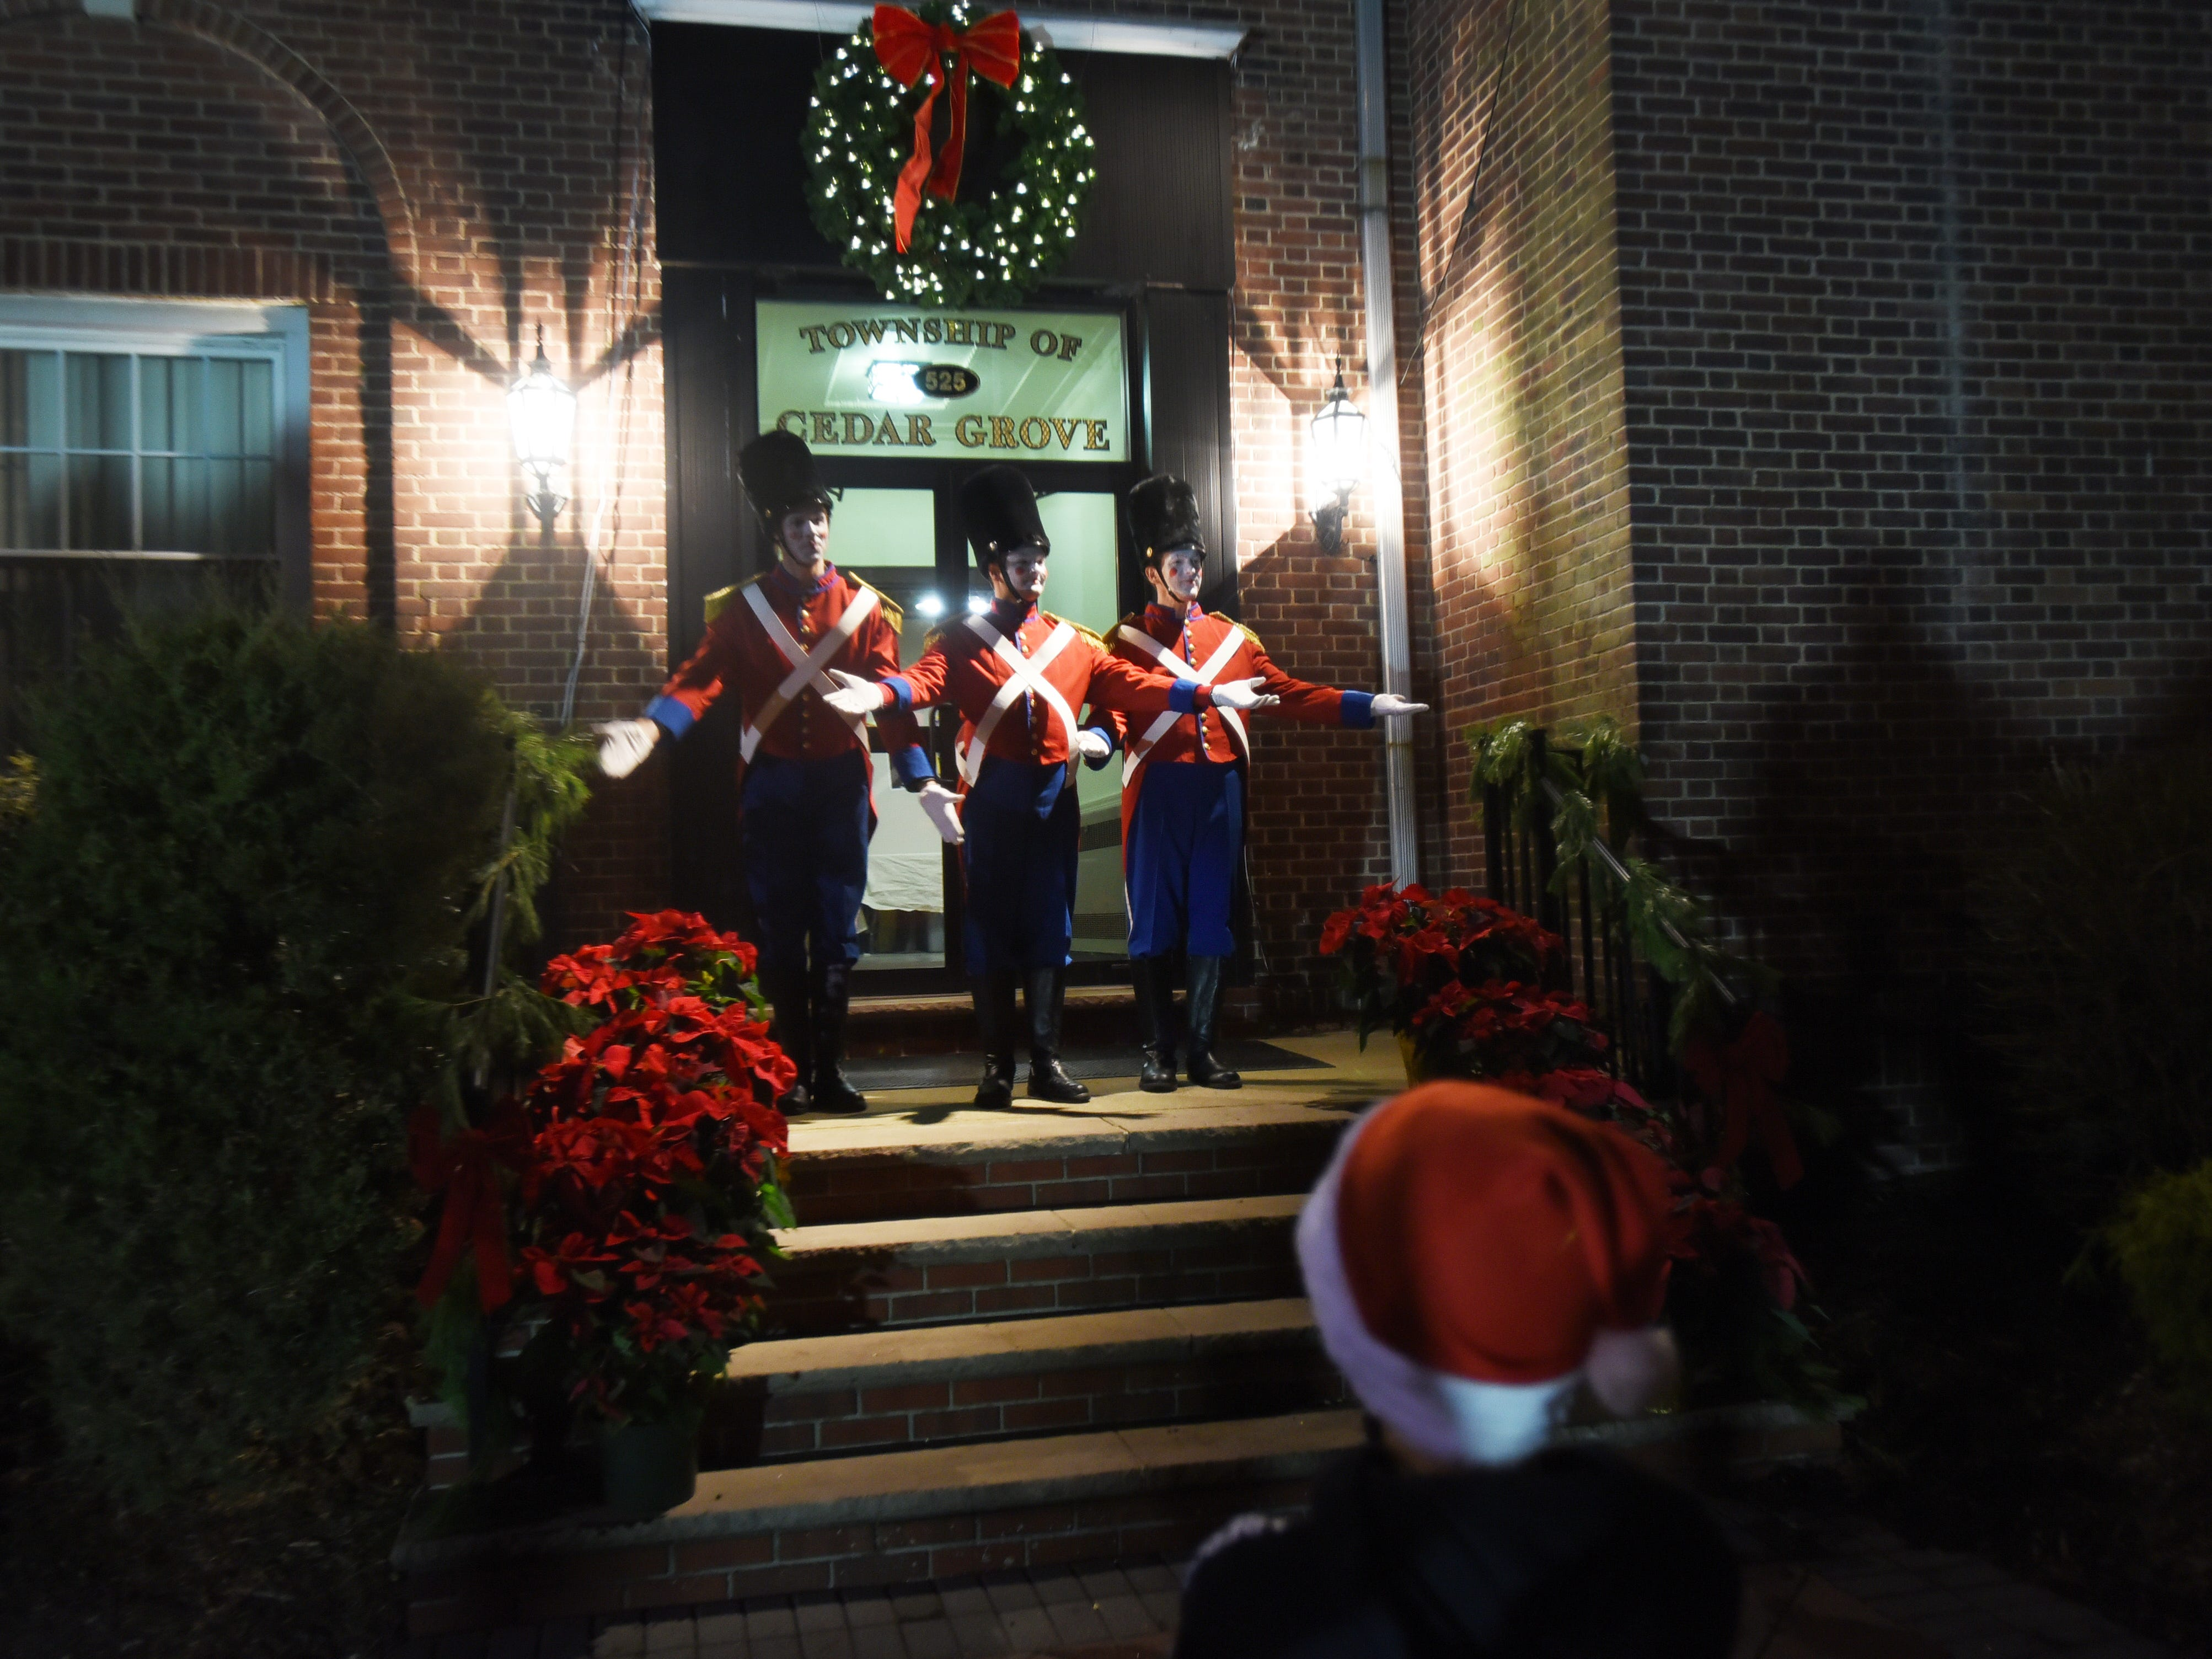 Cobblestone Singing Toy Soldiers sing prior to the Christmas Tree Lighting ceremony at Cedar Grove Town Hall on 12/03/18.